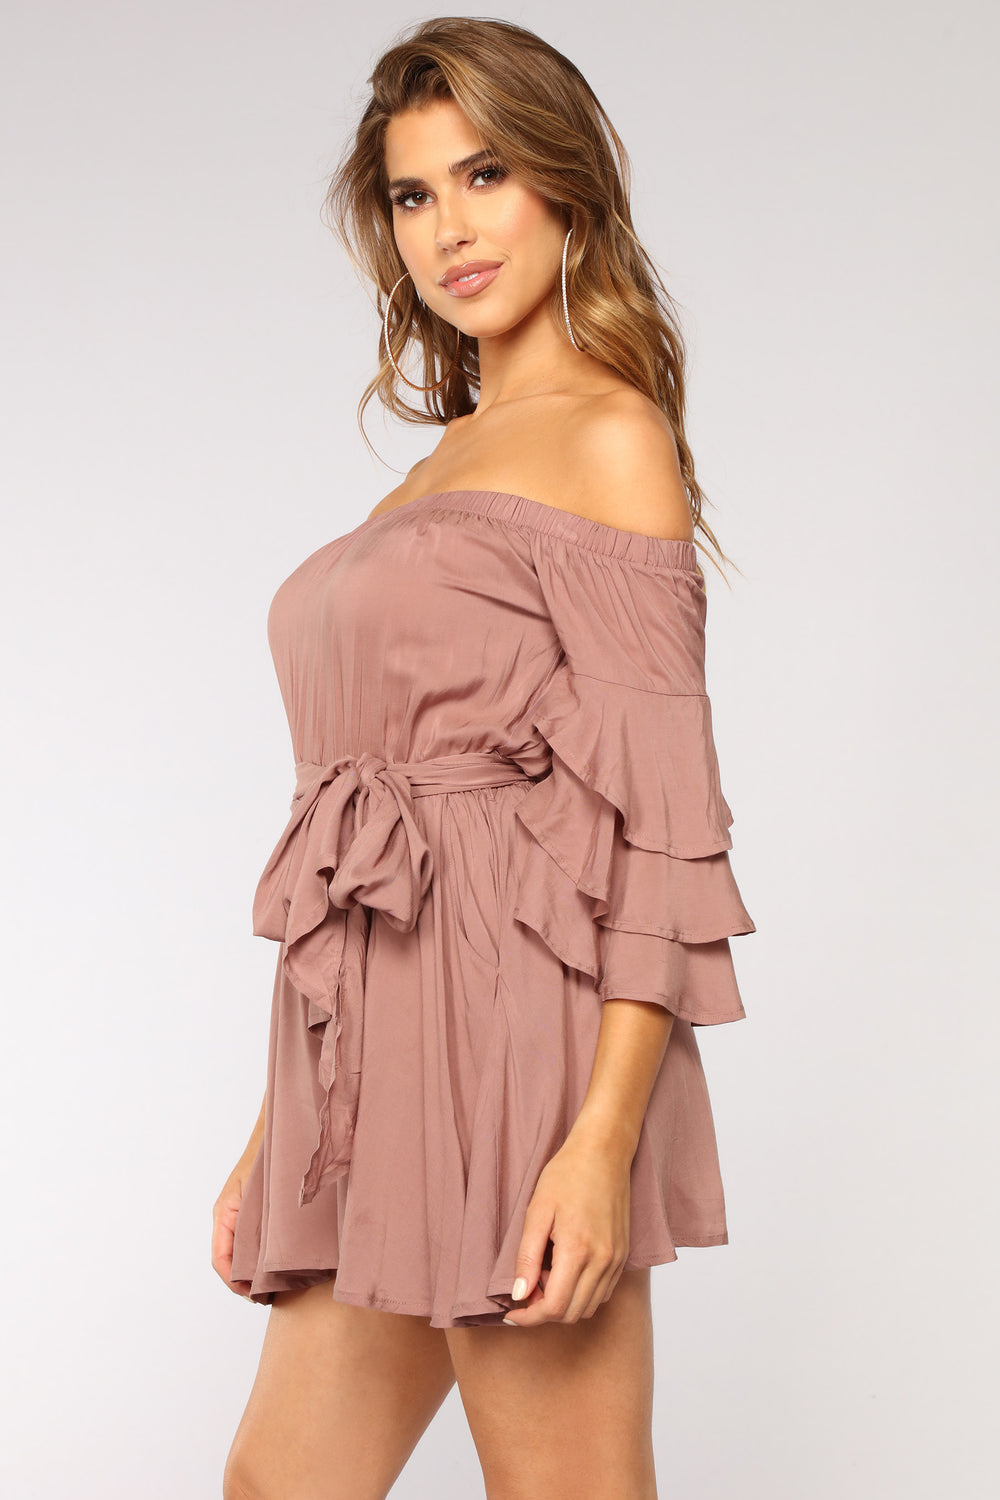 Morning Bell Sleeve Romper - Mauve